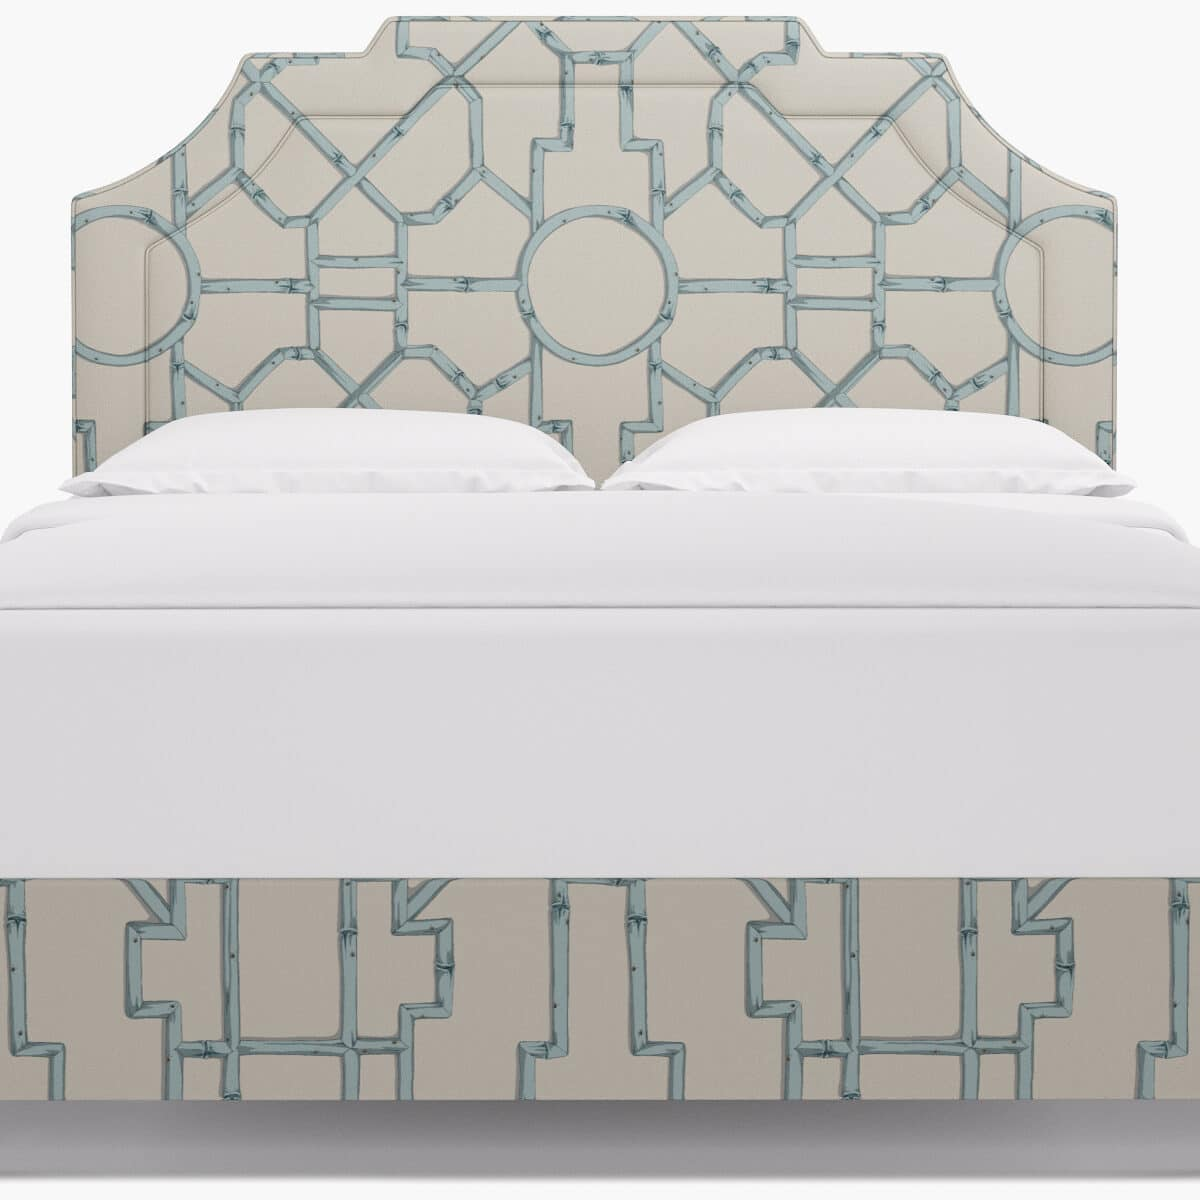 Upholstered beds are grrandmillennial